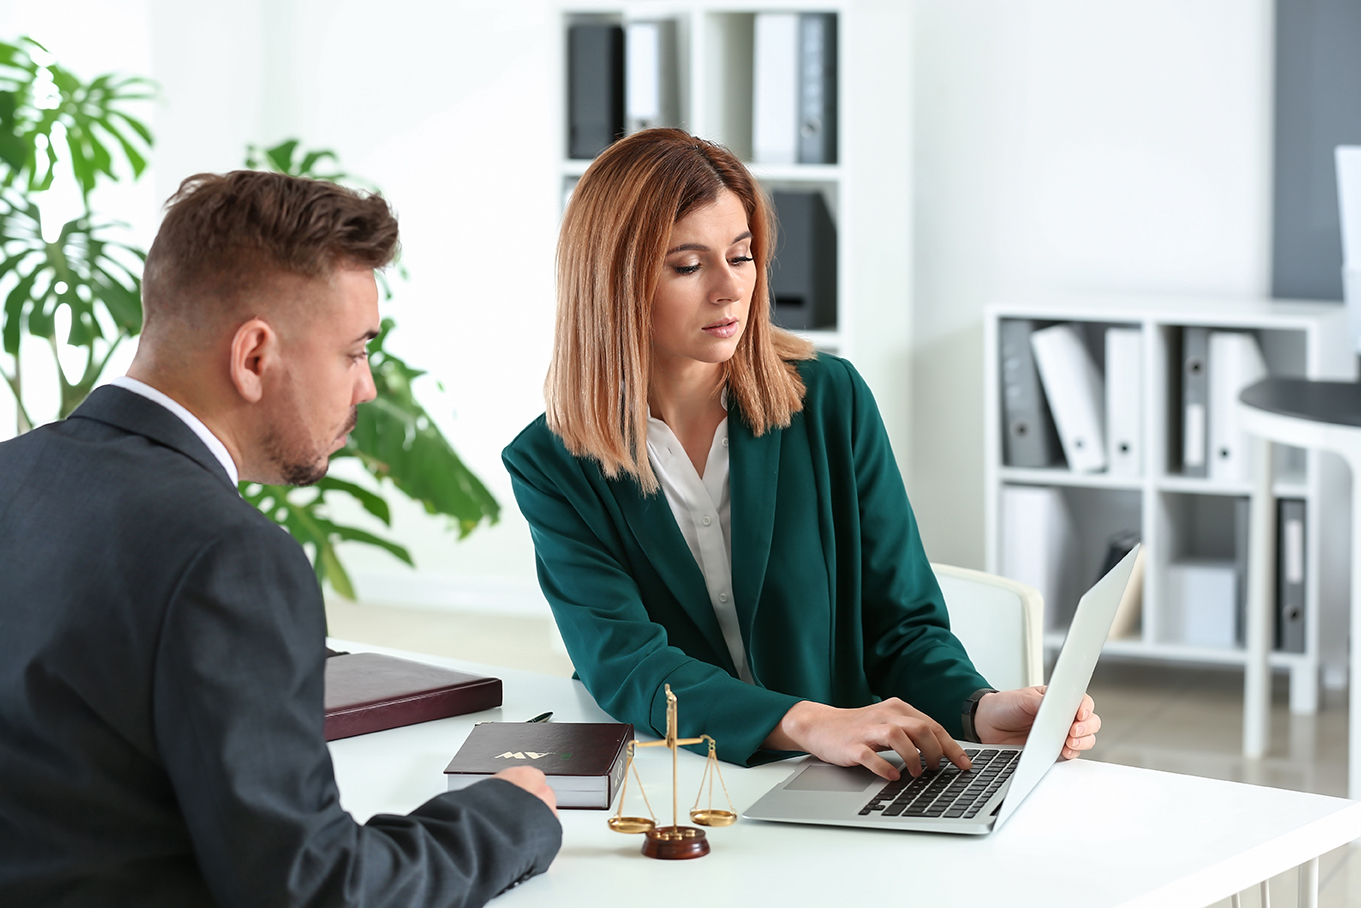 a man and woman looking at a laptop